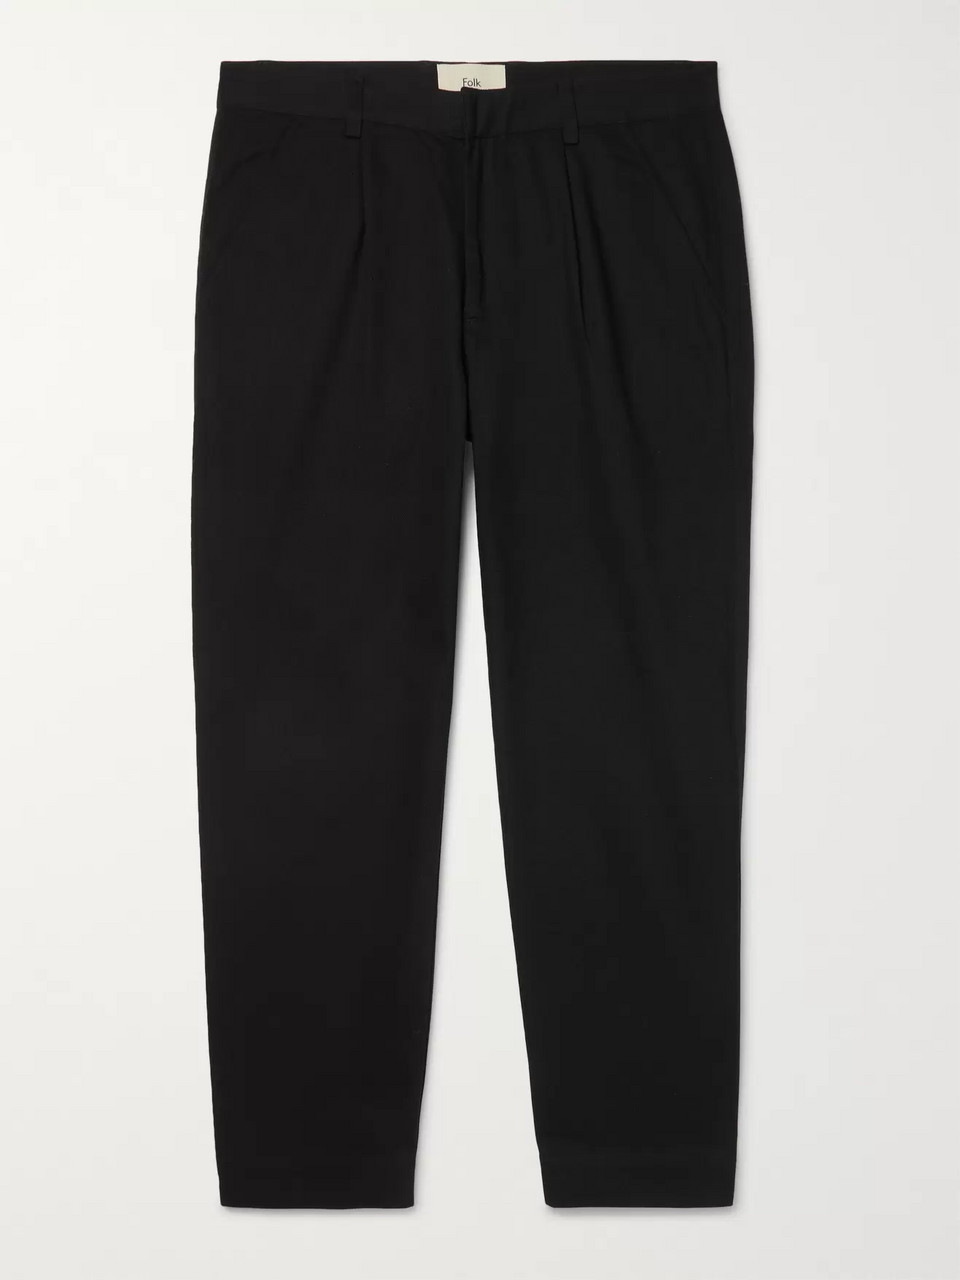 Folk Black Pleated Poplin-Trimmed Cotton-Twill Trousers